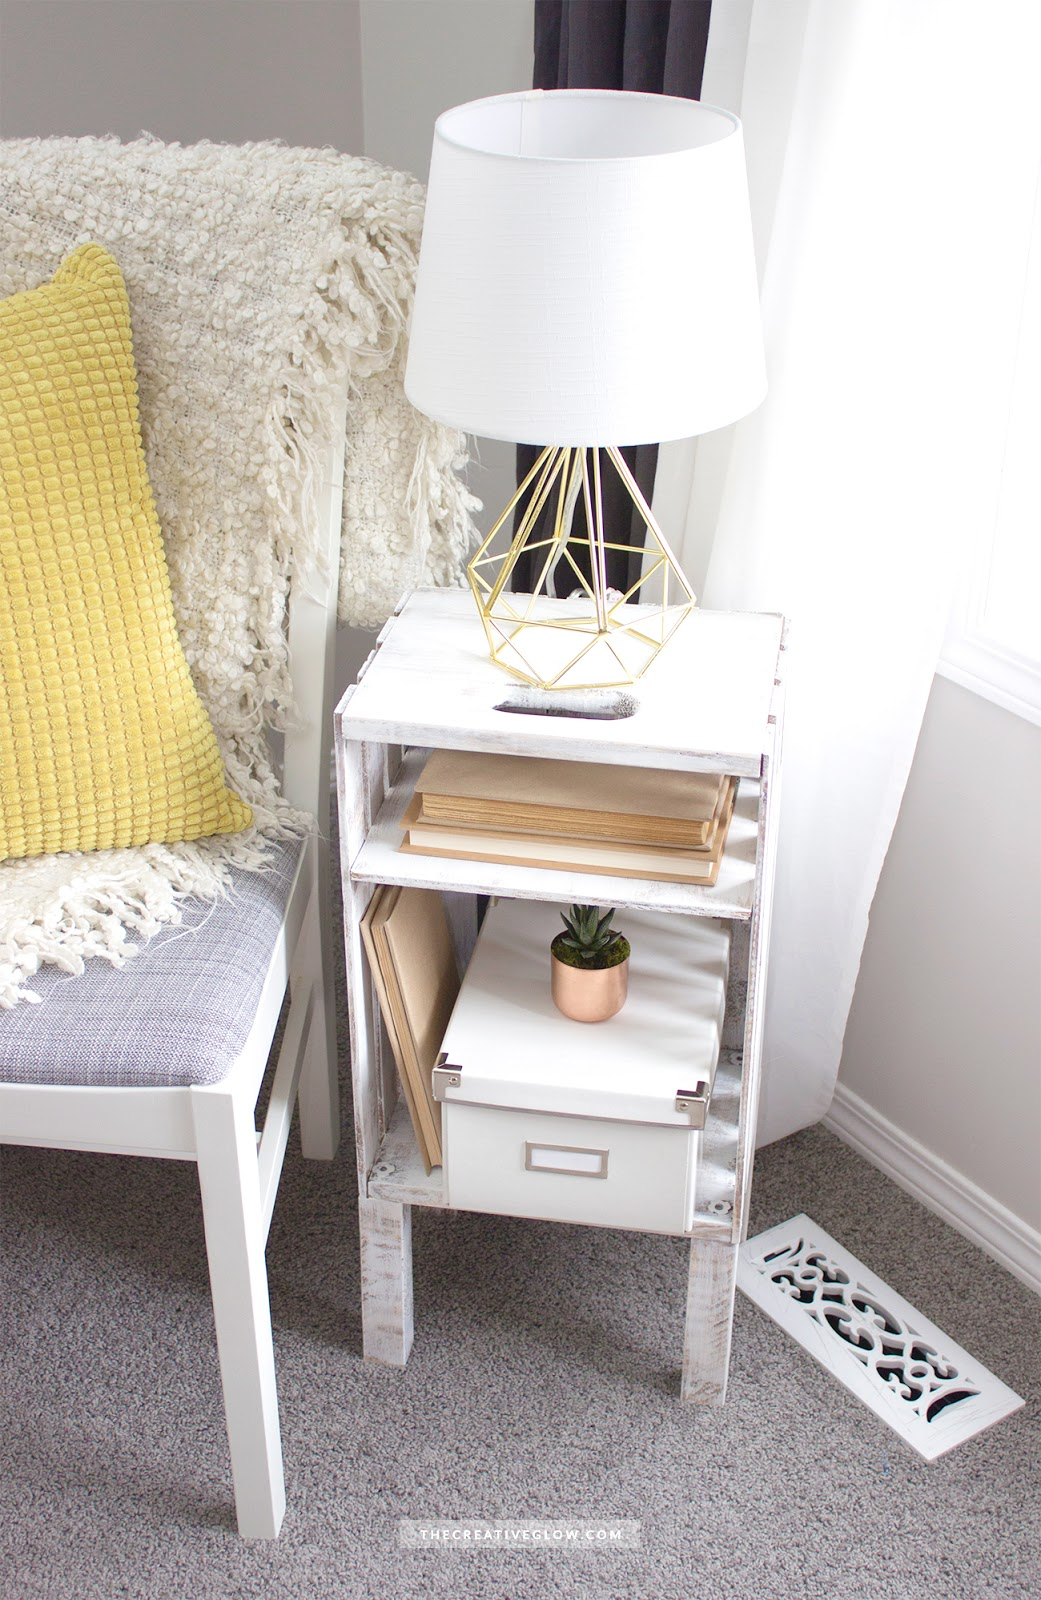 Diy wood crate side table quick easy inexpensive